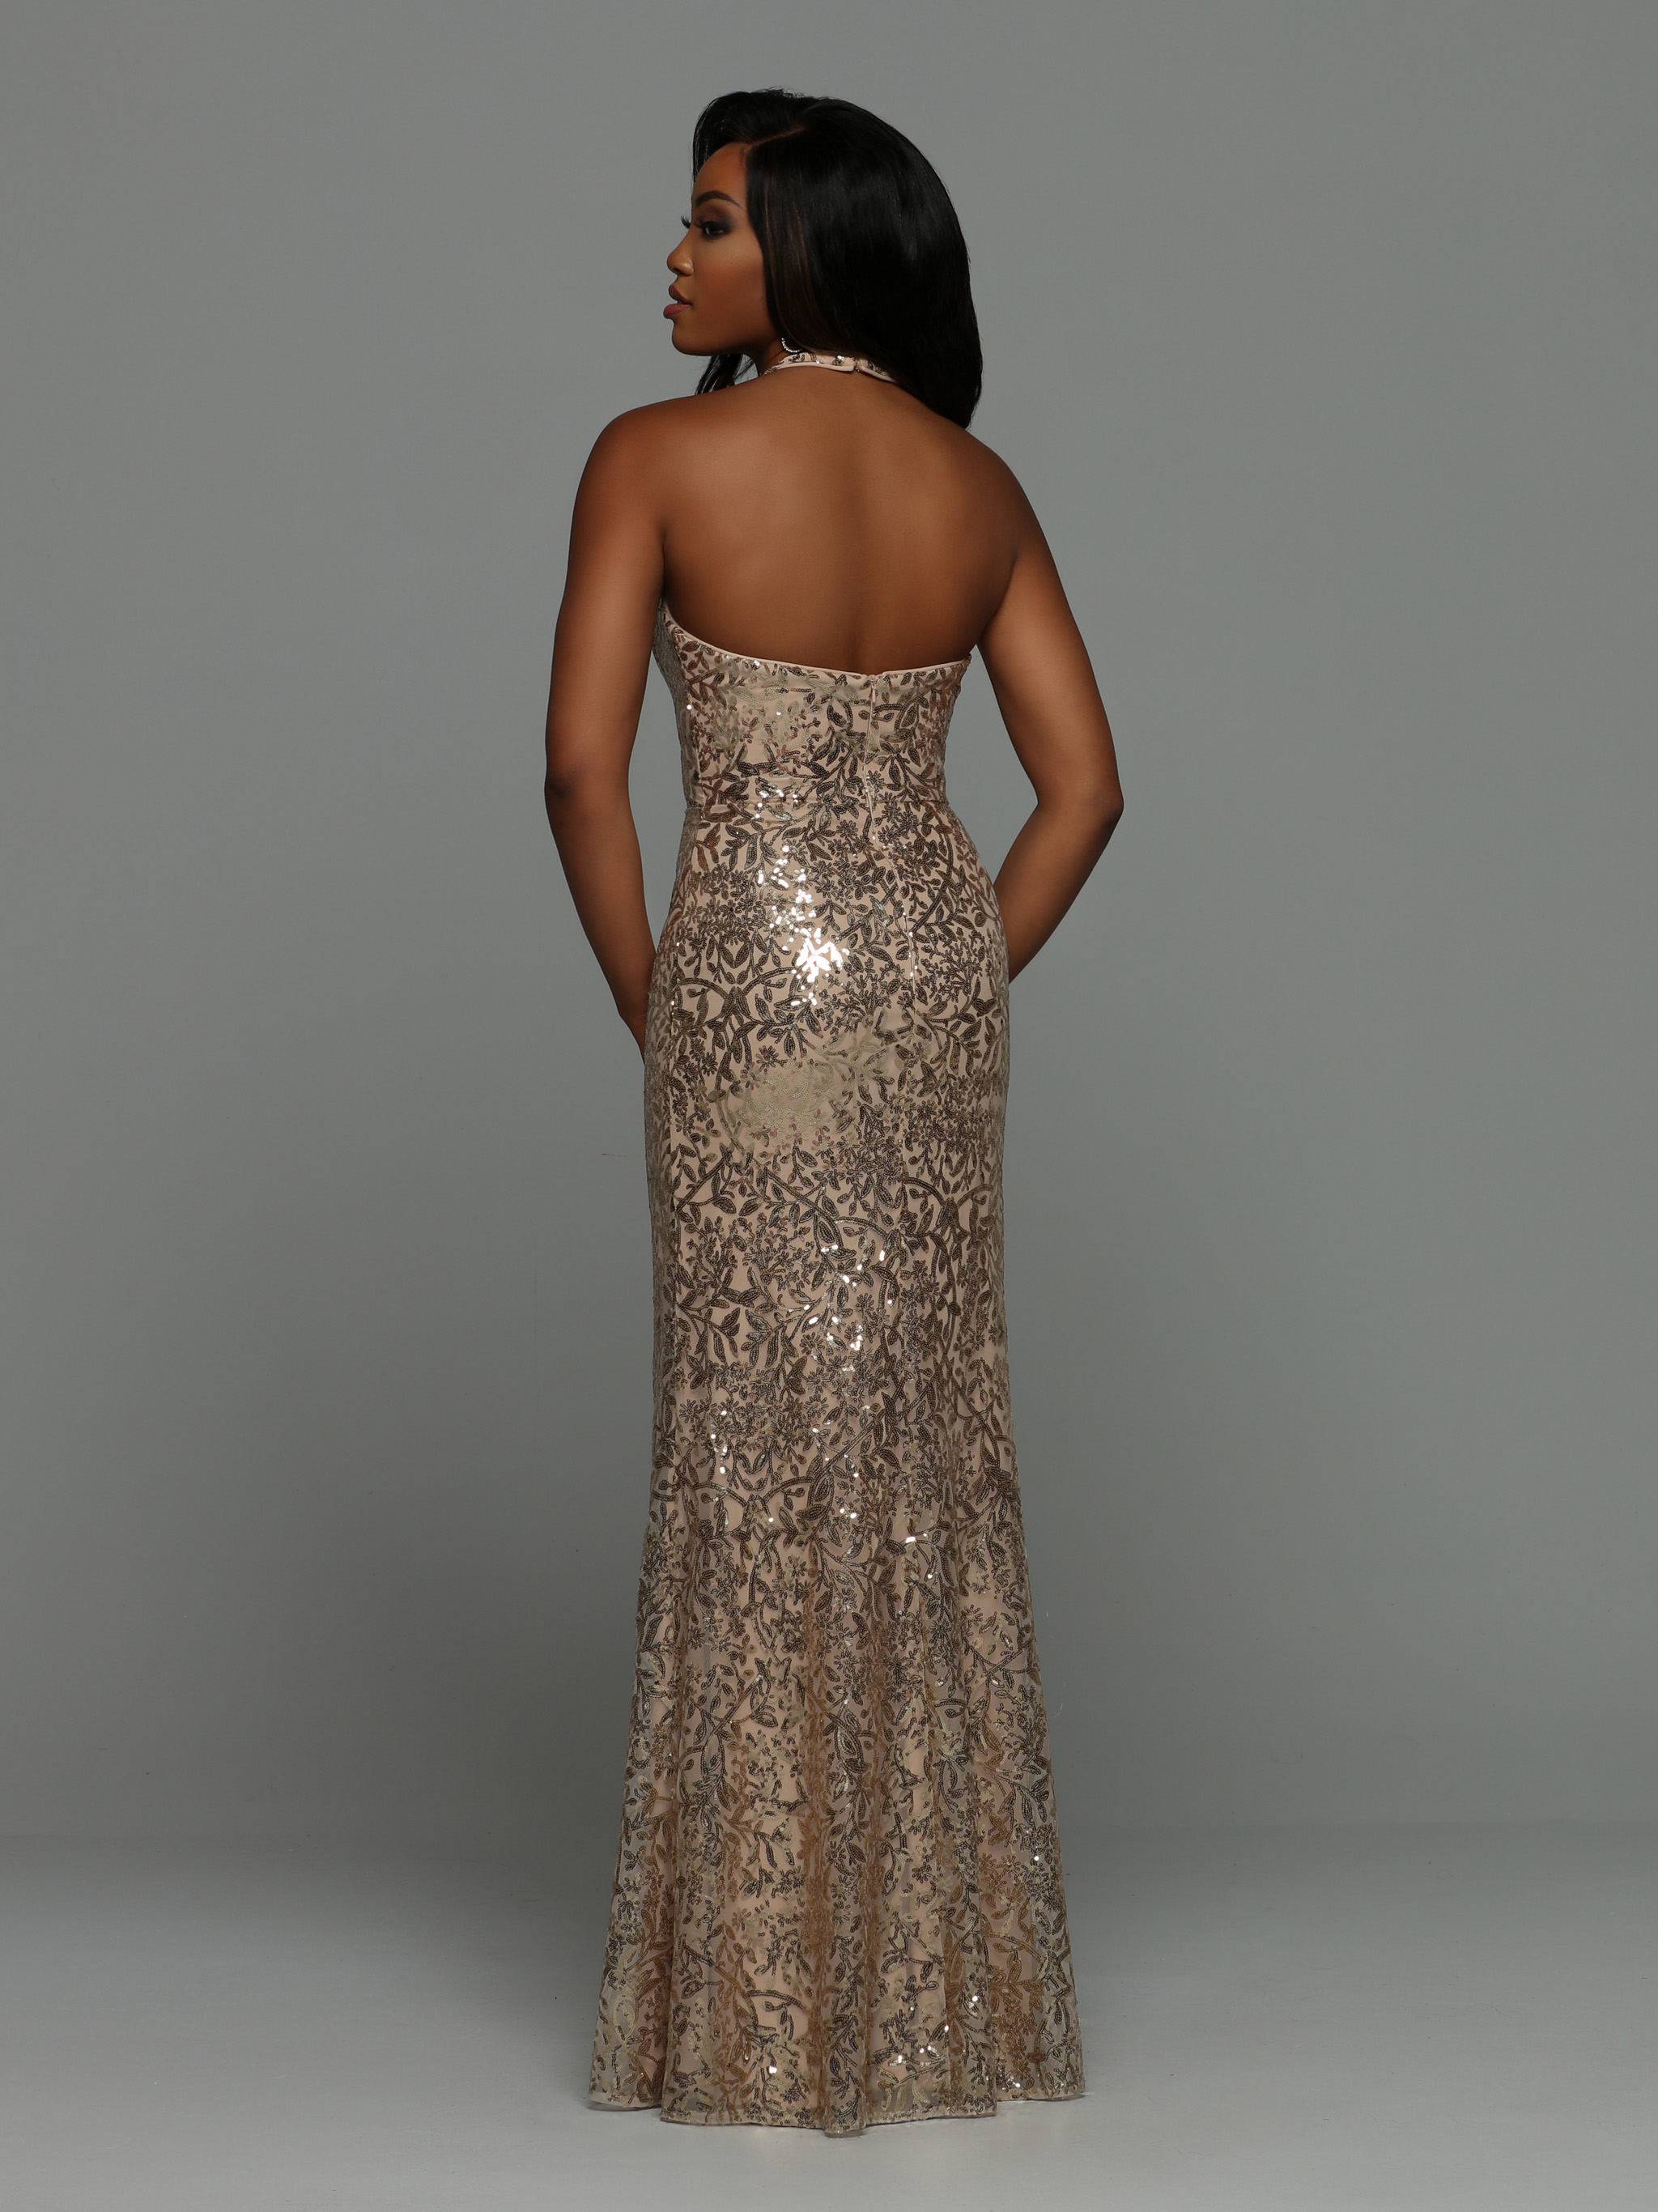 Image showing back view of style #71977